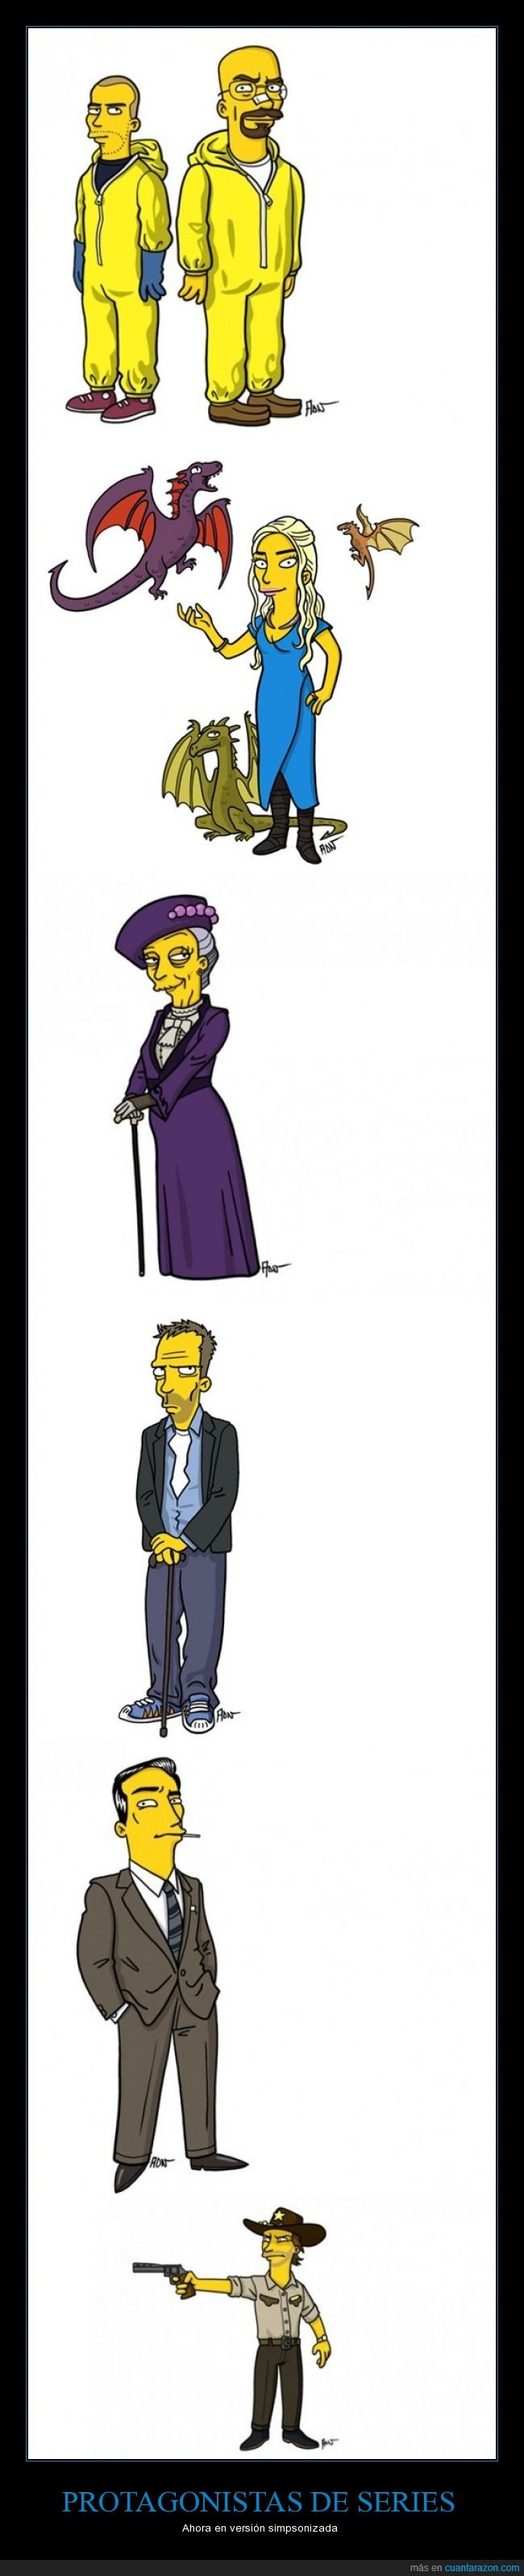 abbey,breaking bad,downtown,juego de tronos,mad men,protagonistas,series,simpson,the walking dead